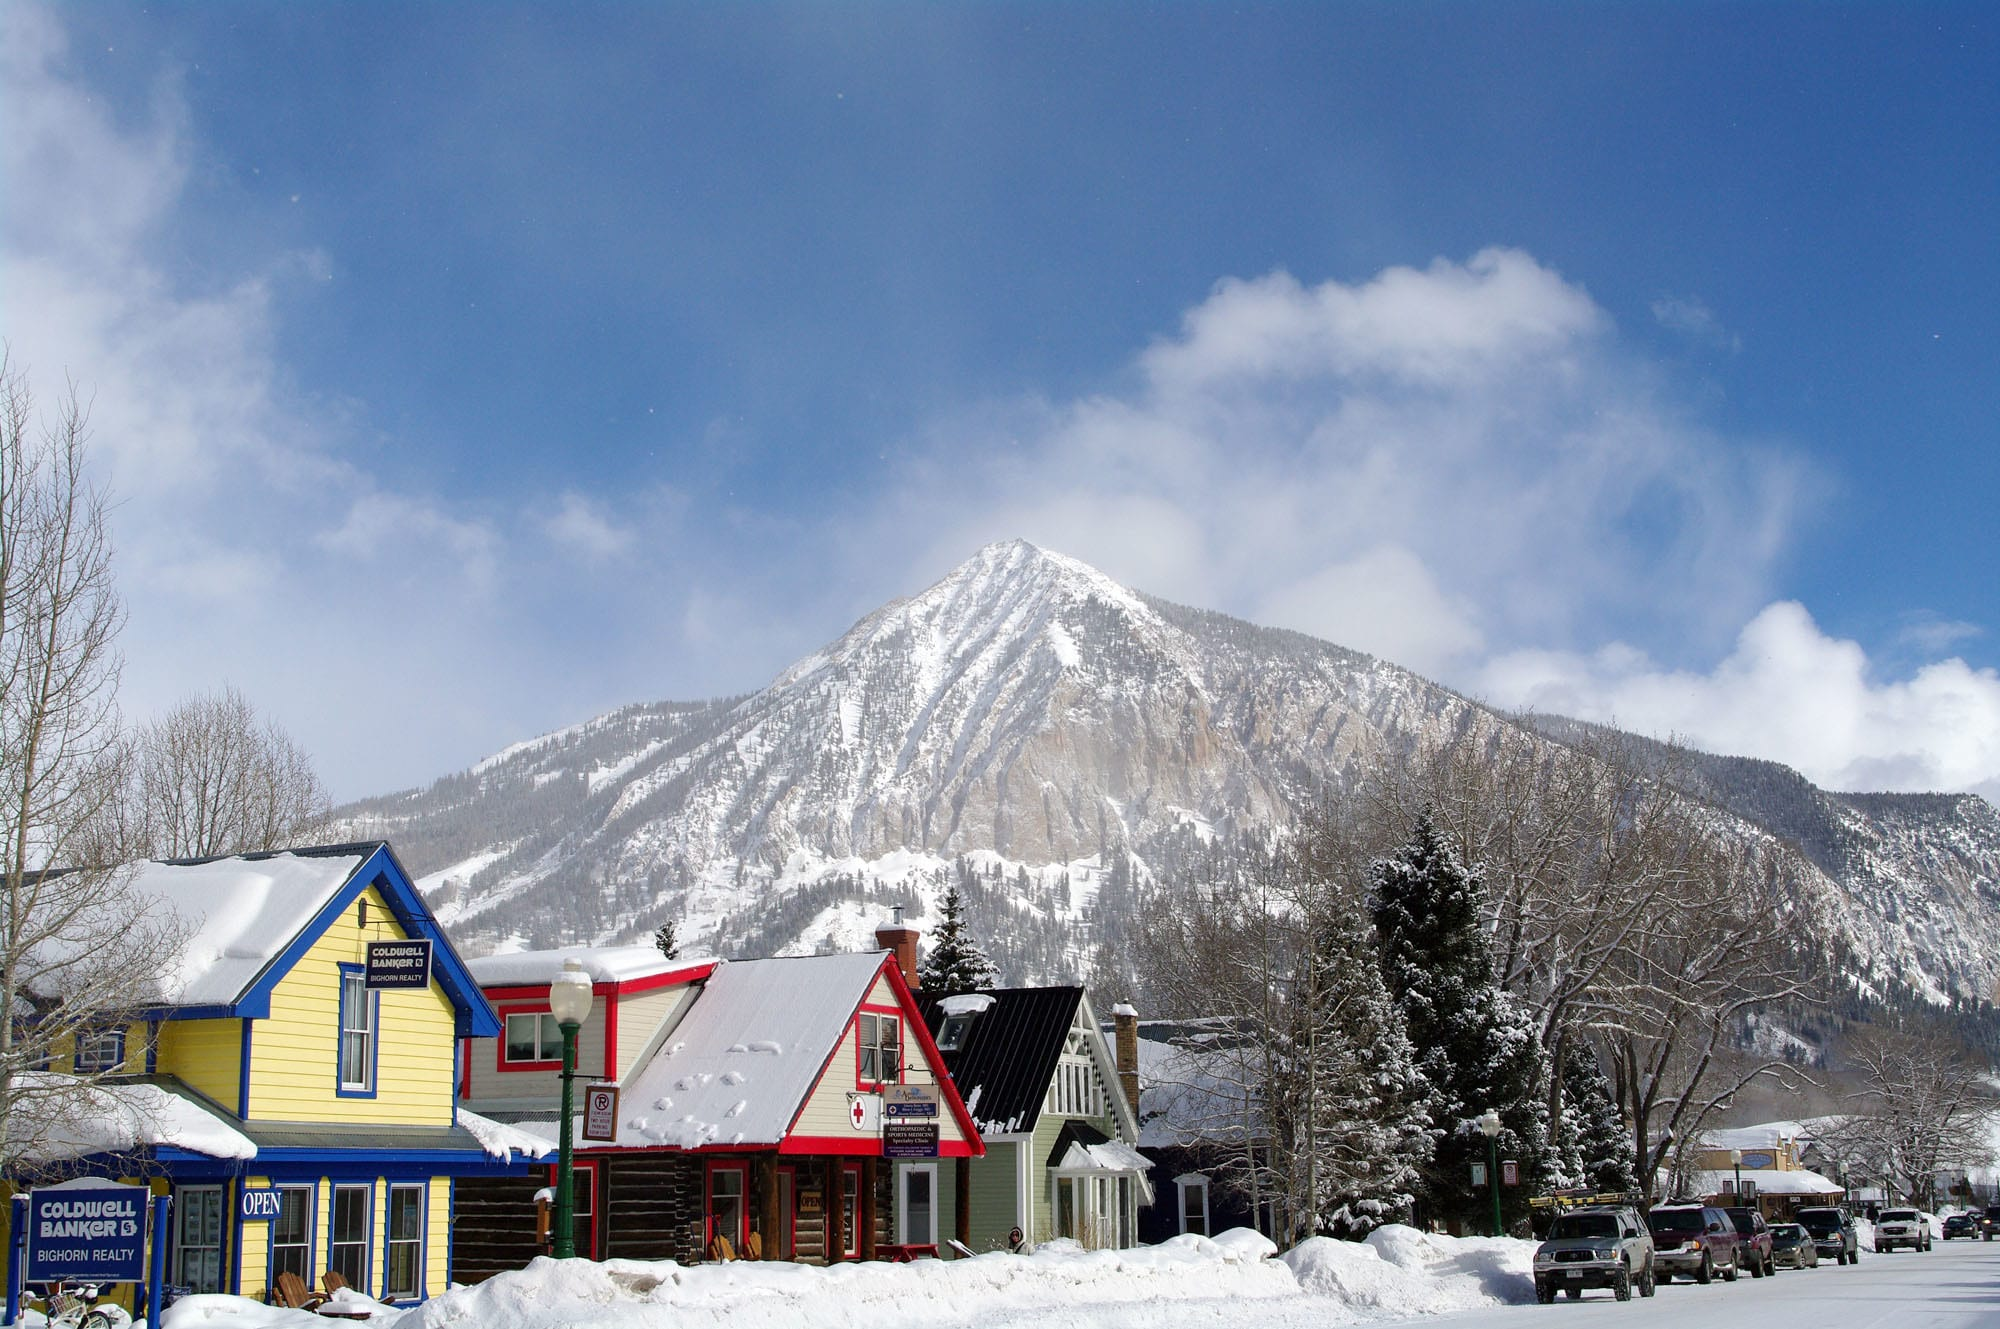 image of Crested butte downtown